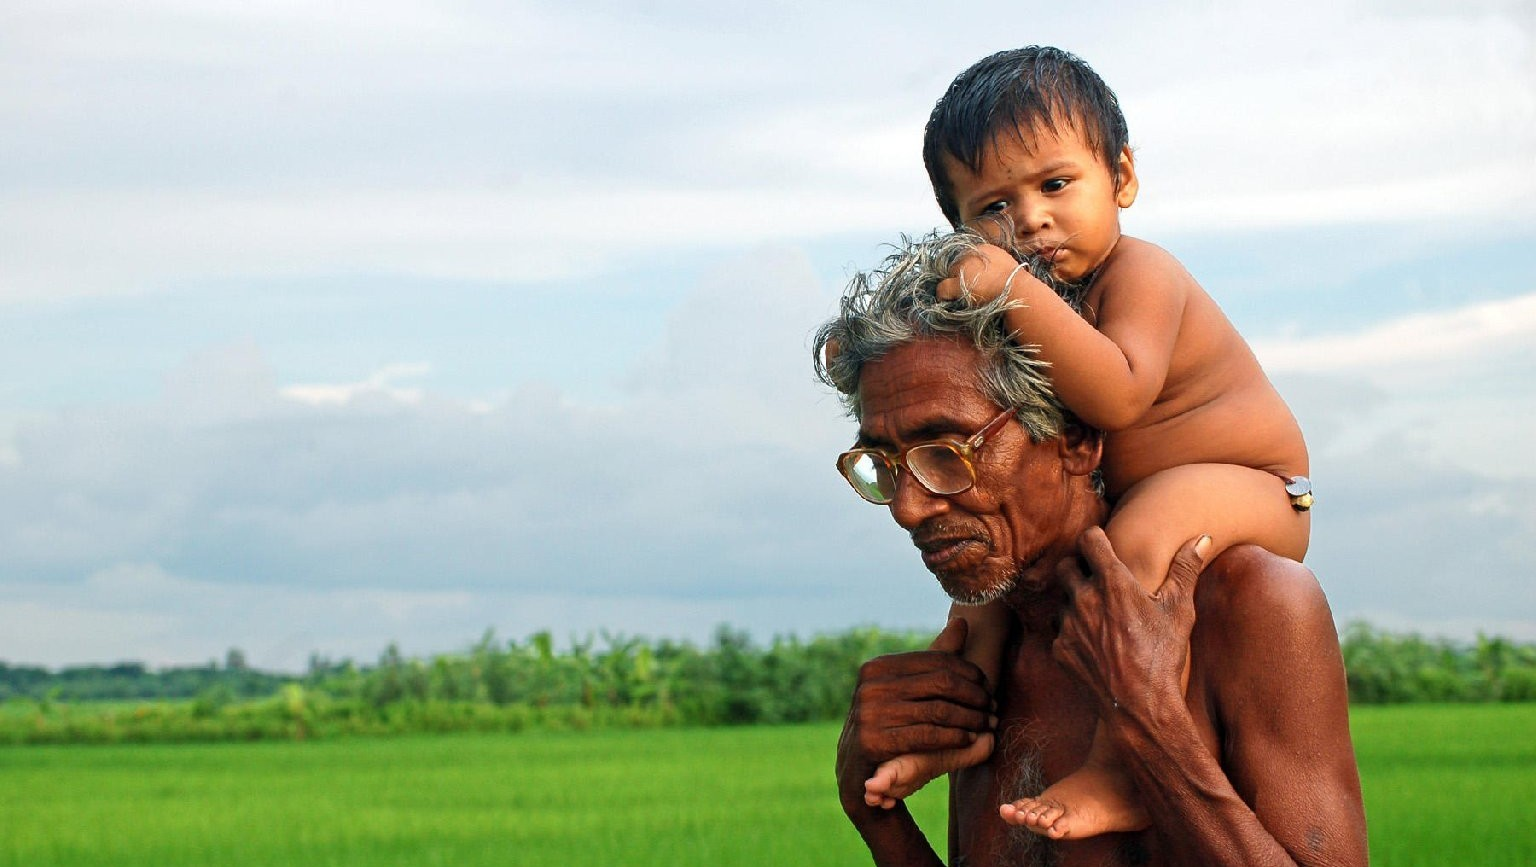 A grandfather in India enjoys the company of his grandson.